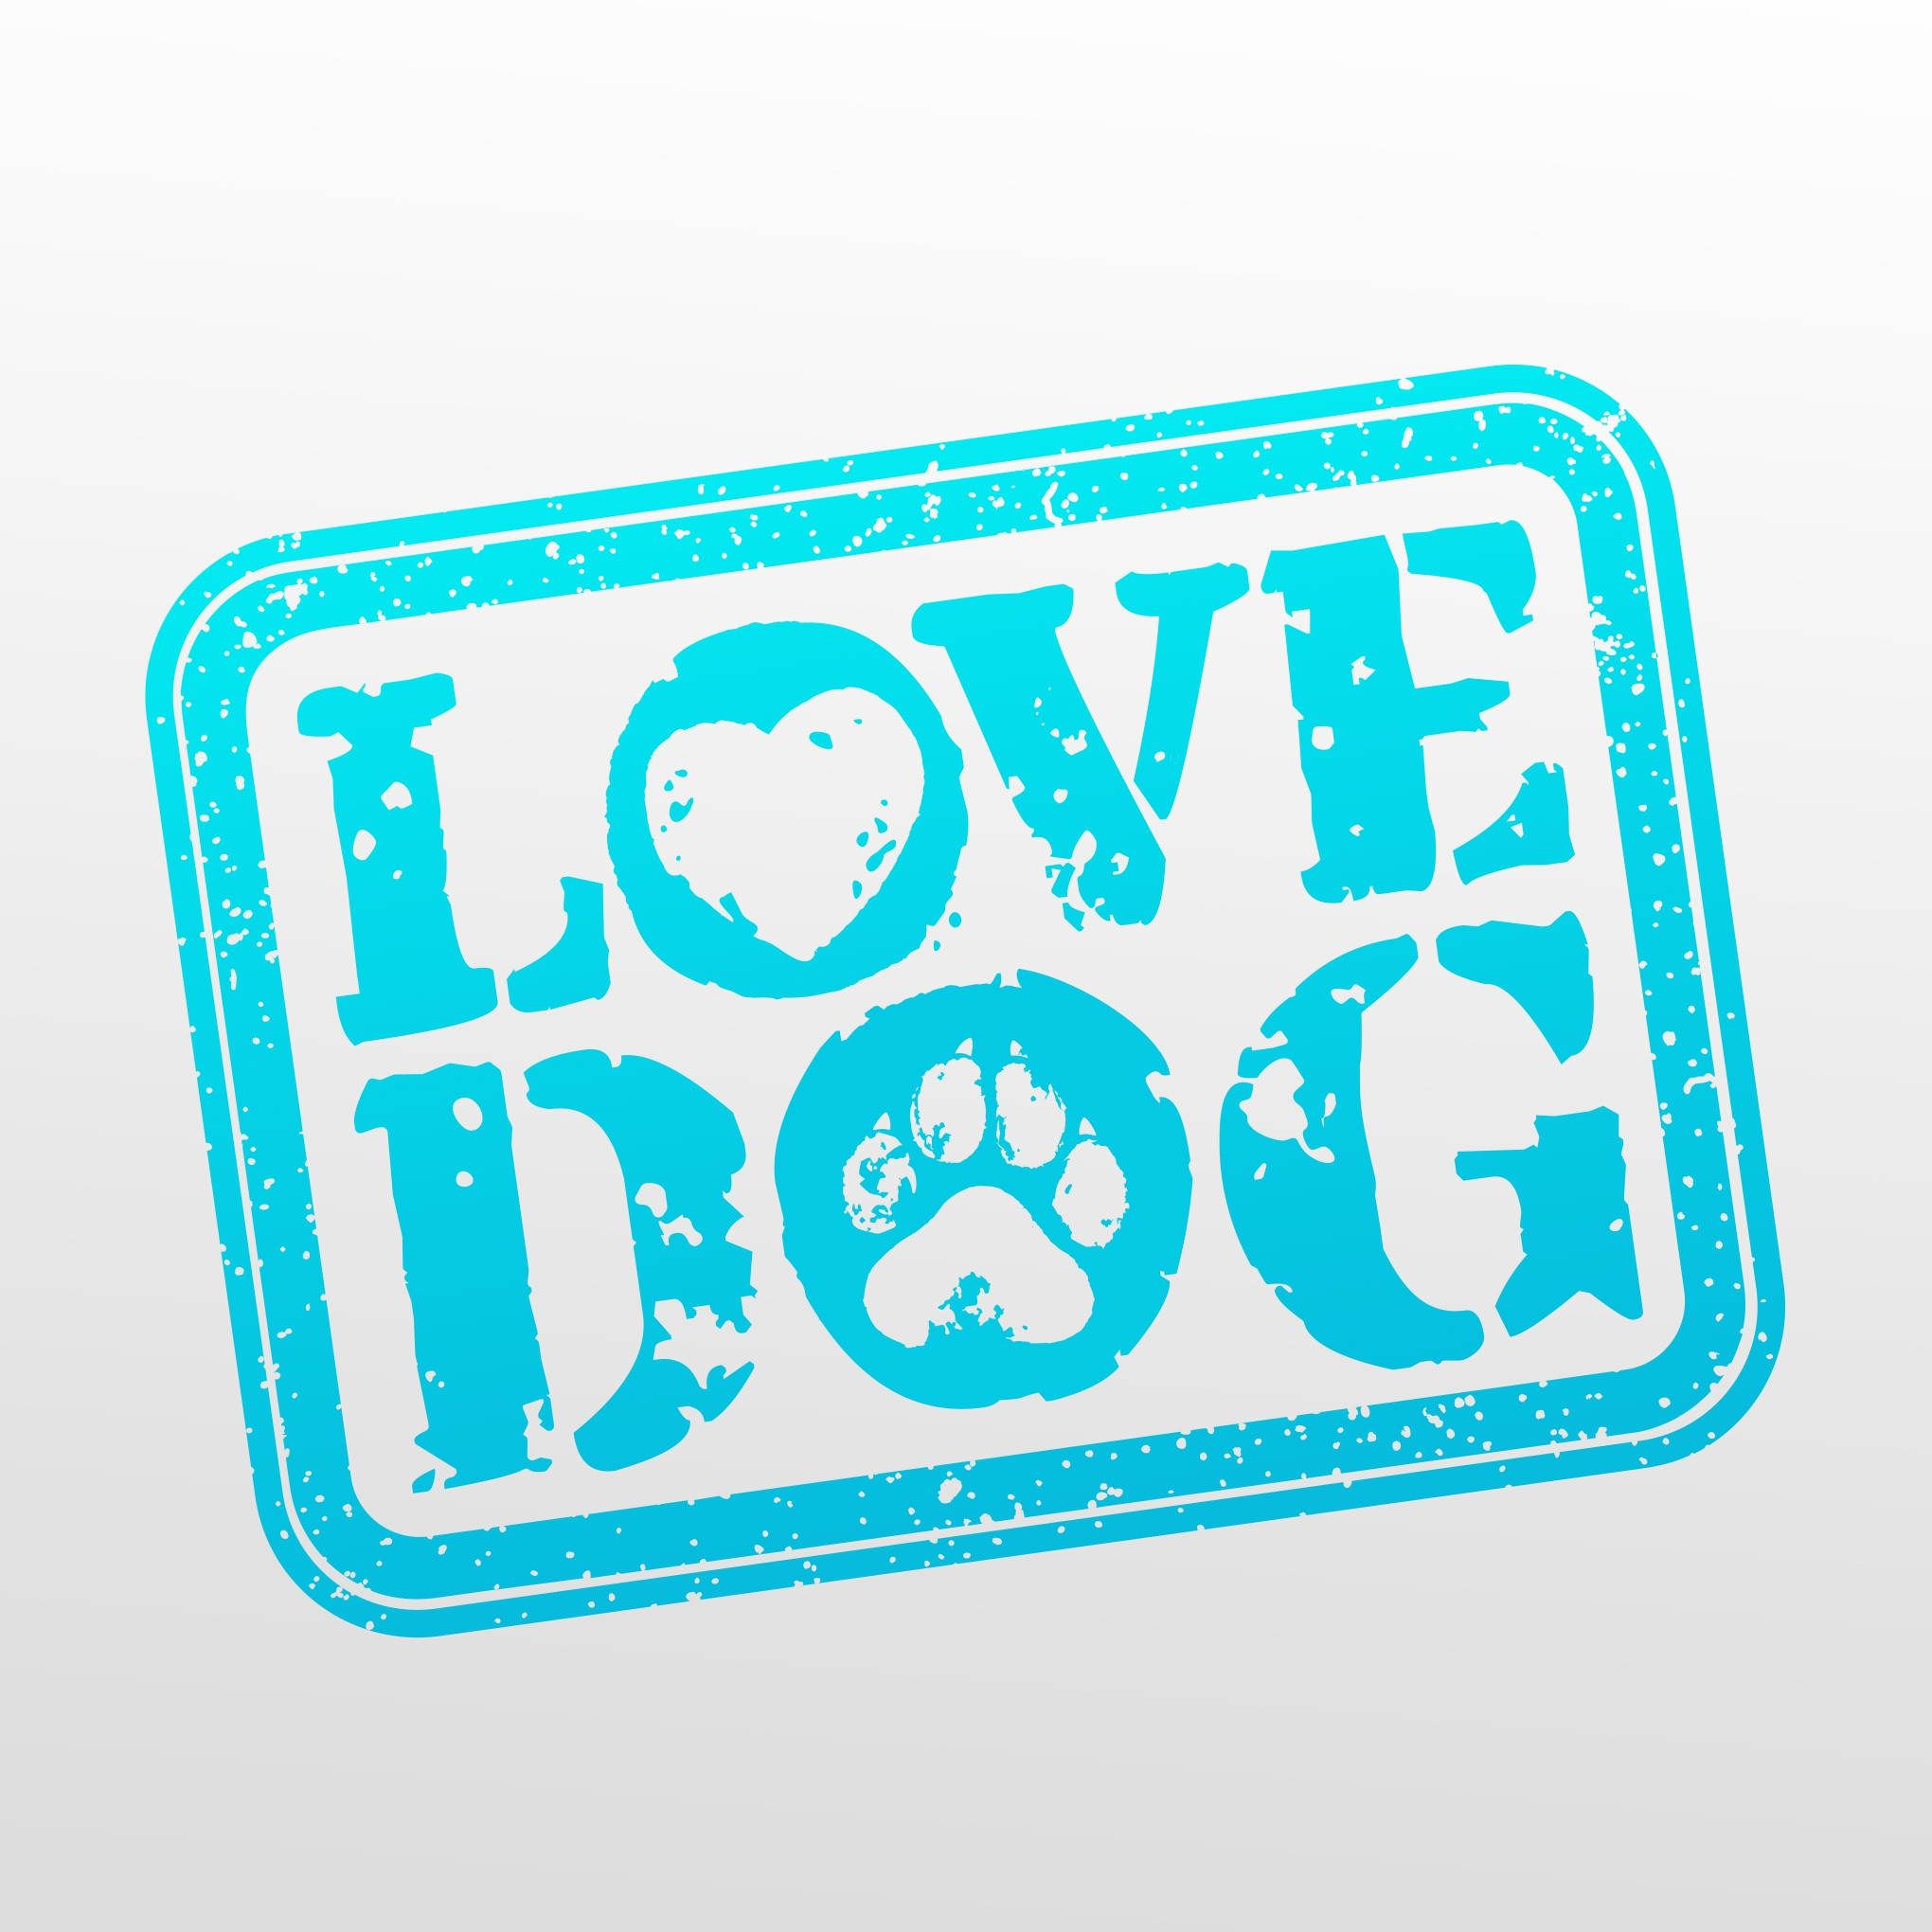 Design my Love Dog Logo we are Donating 1 Million Dollars to help Animals in Need,